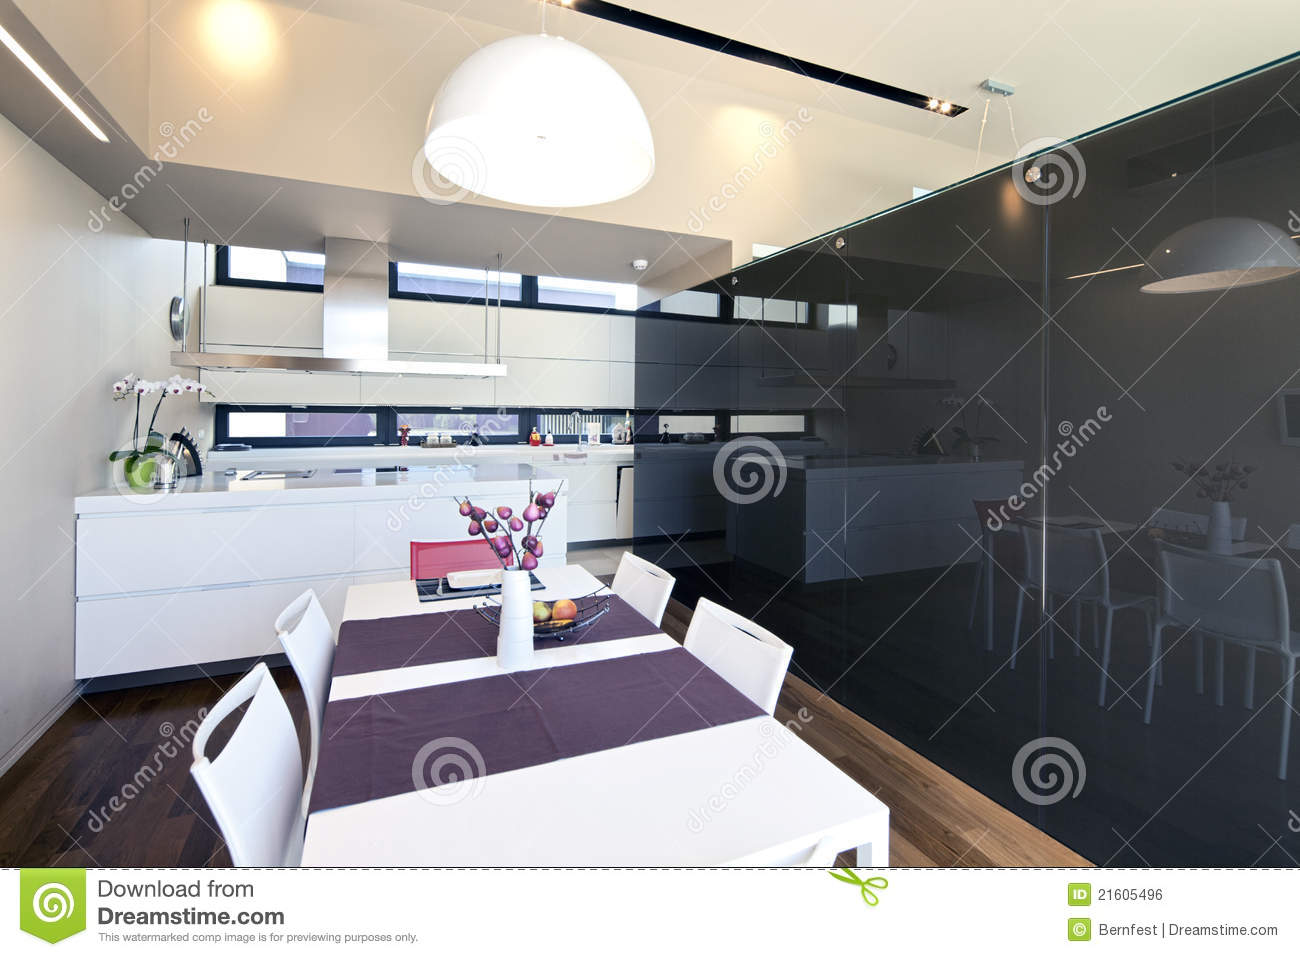 House interior royalty free stock image image 21605496 for Interior design zagreb